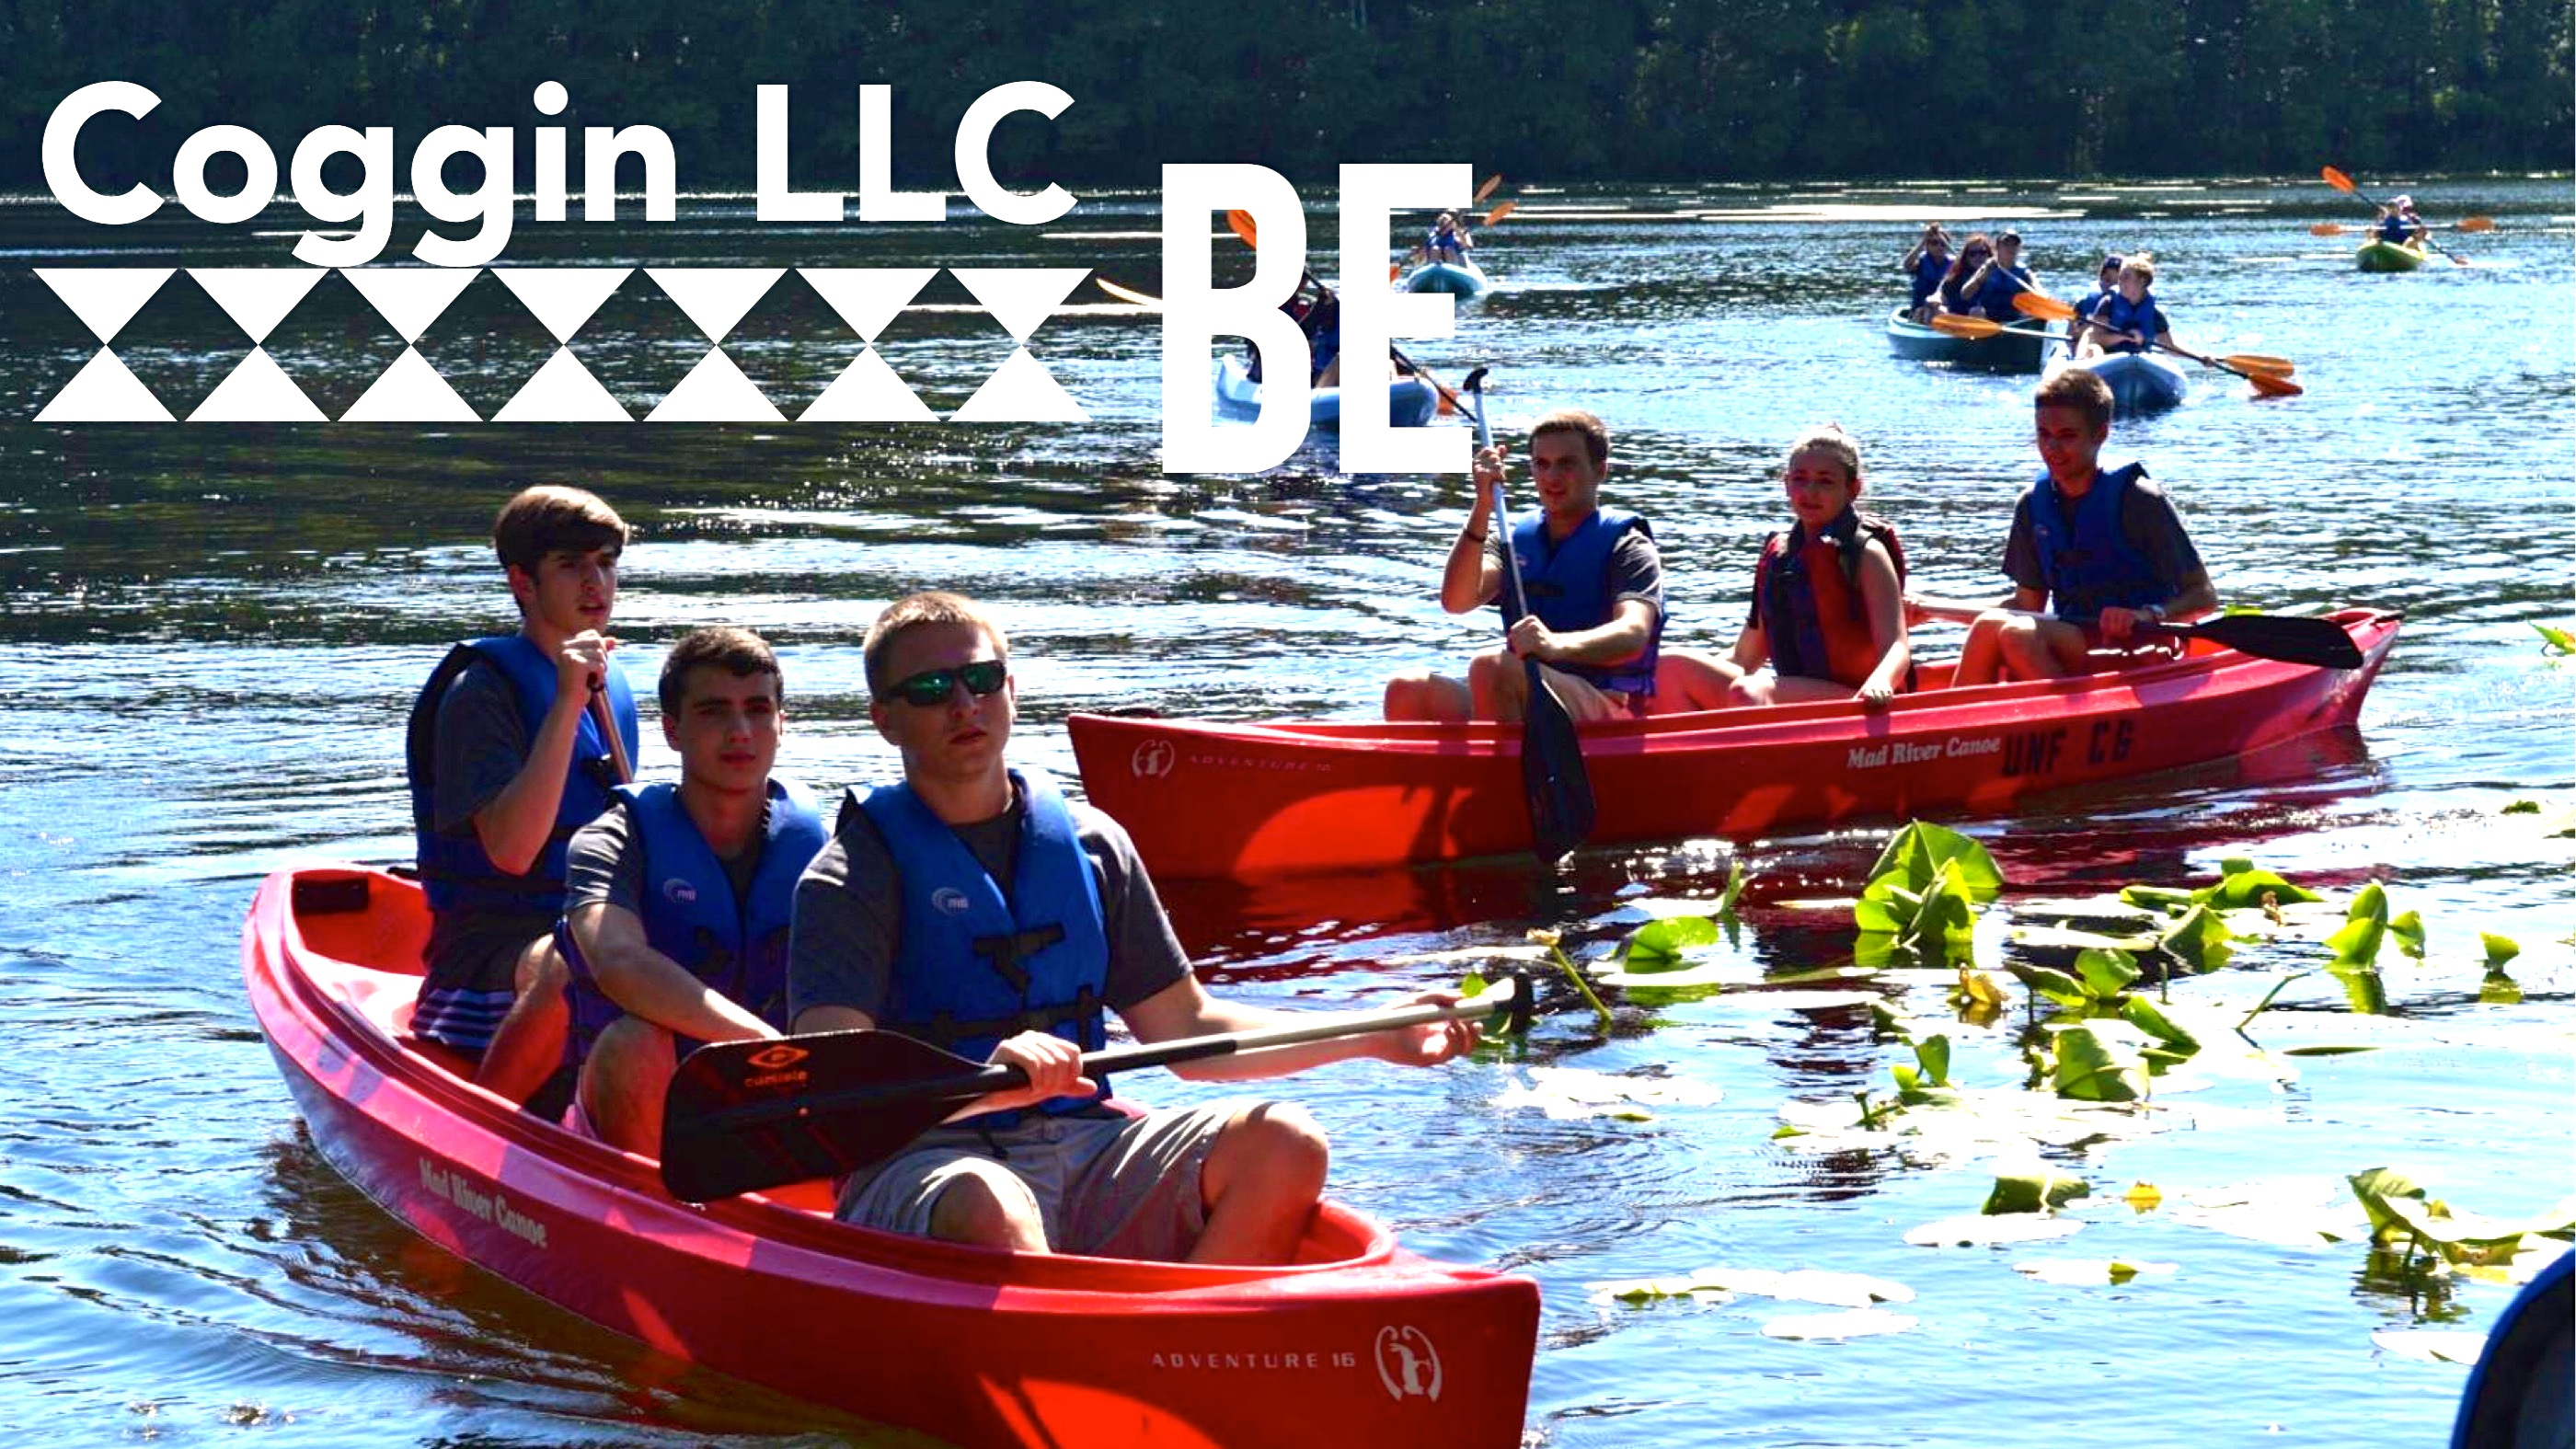 Coggin Living-learning community picture of students building relationship while canoeing on a lake.